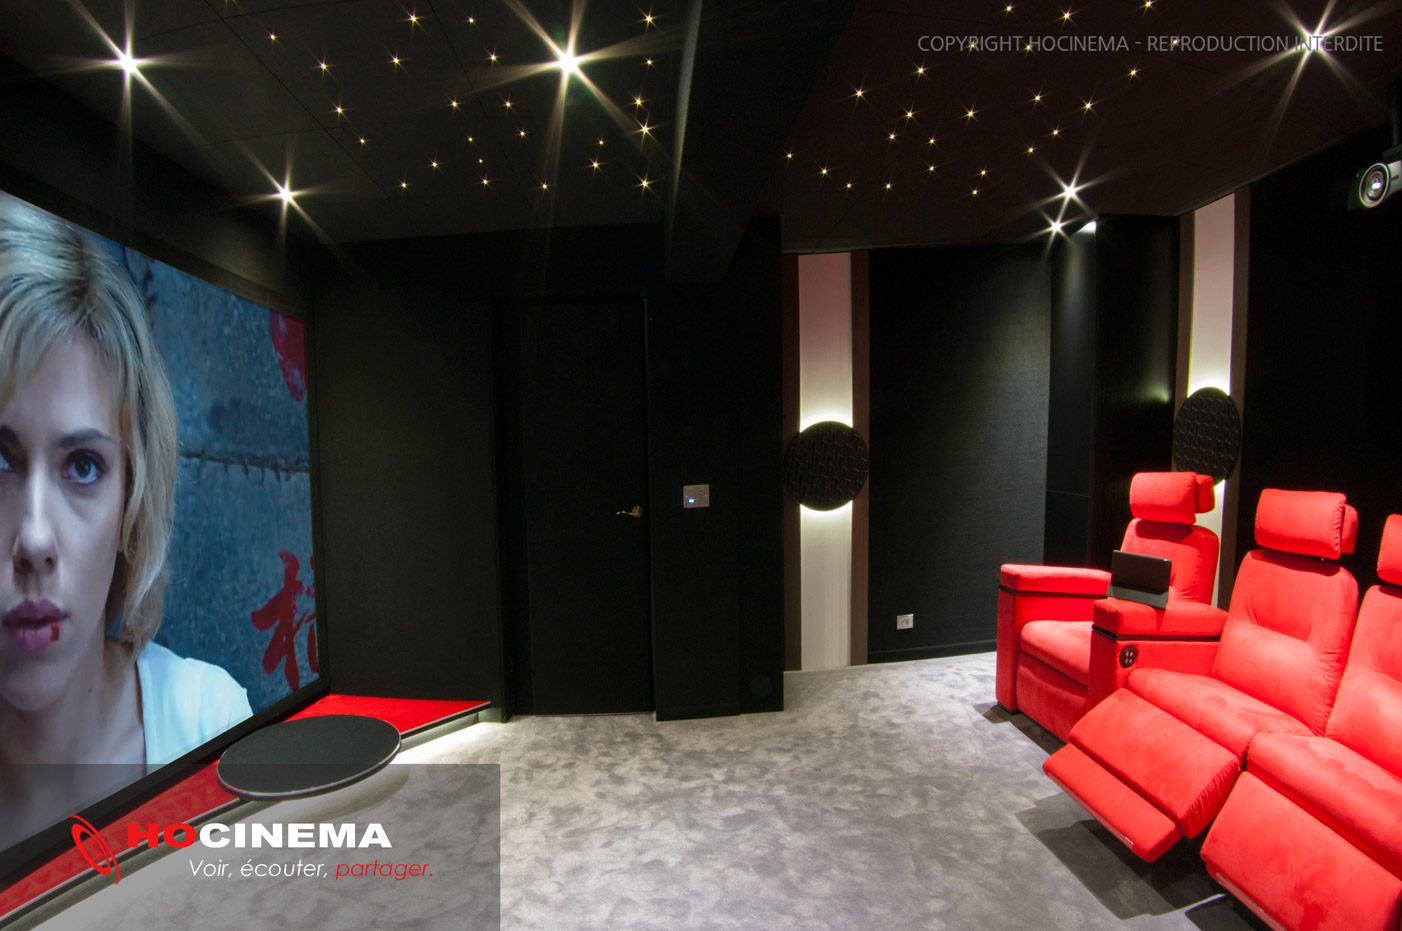 deco salle de cinema awesome deco salle theme cinema deco salle cinema deco salon jeune fort. Black Bedroom Furniture Sets. Home Design Ideas